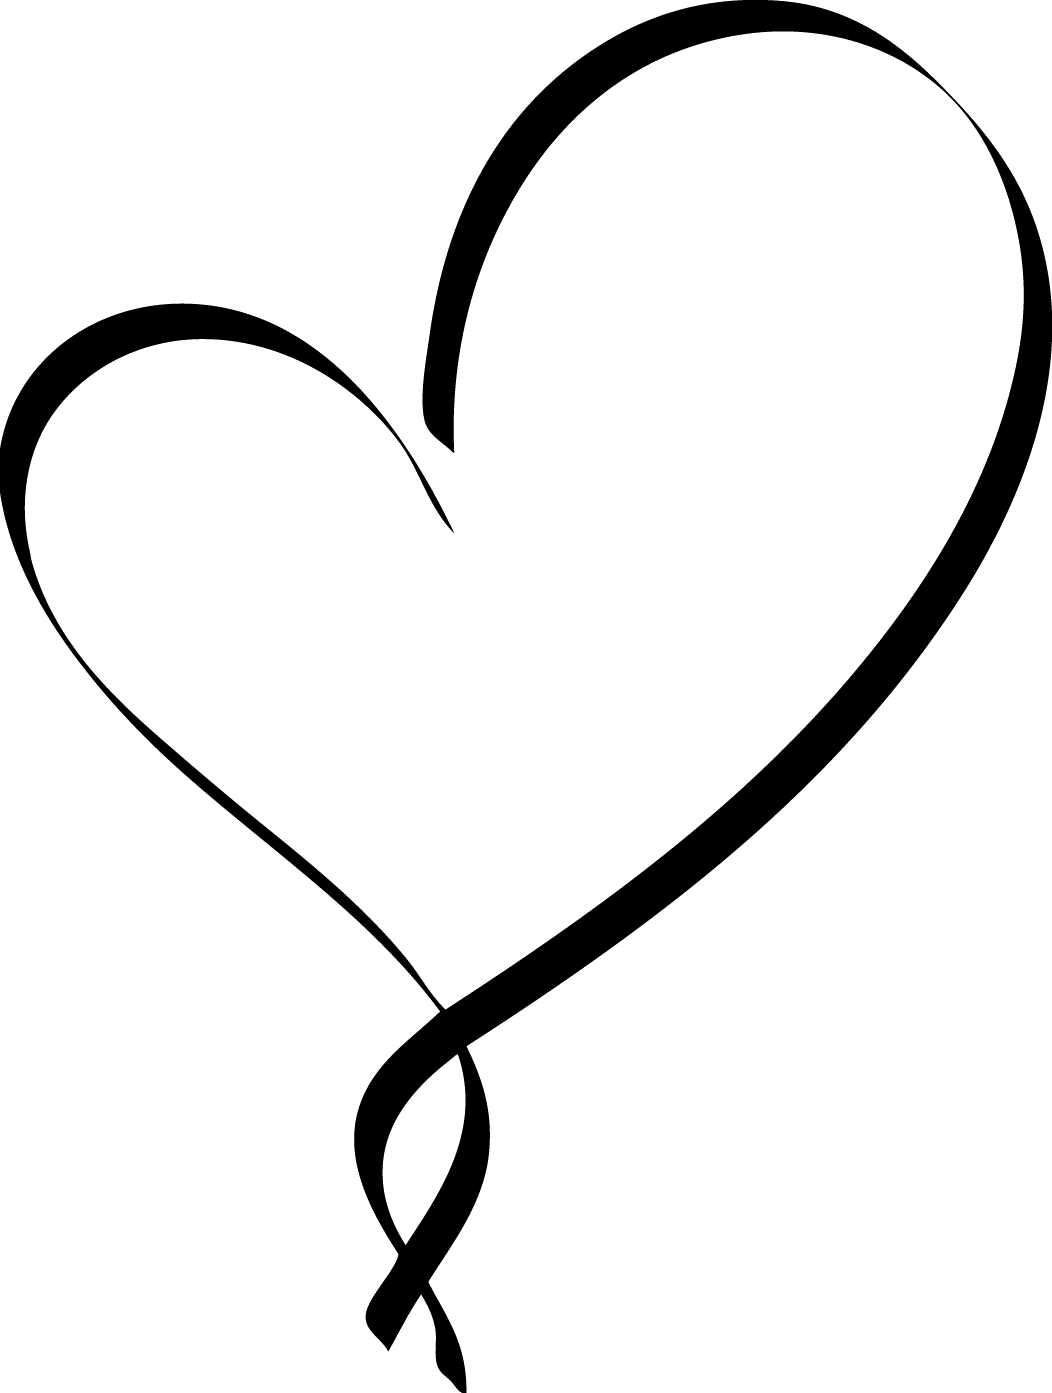 Hearts clipart calligraphy, Picture #1322223 hearts clipart.